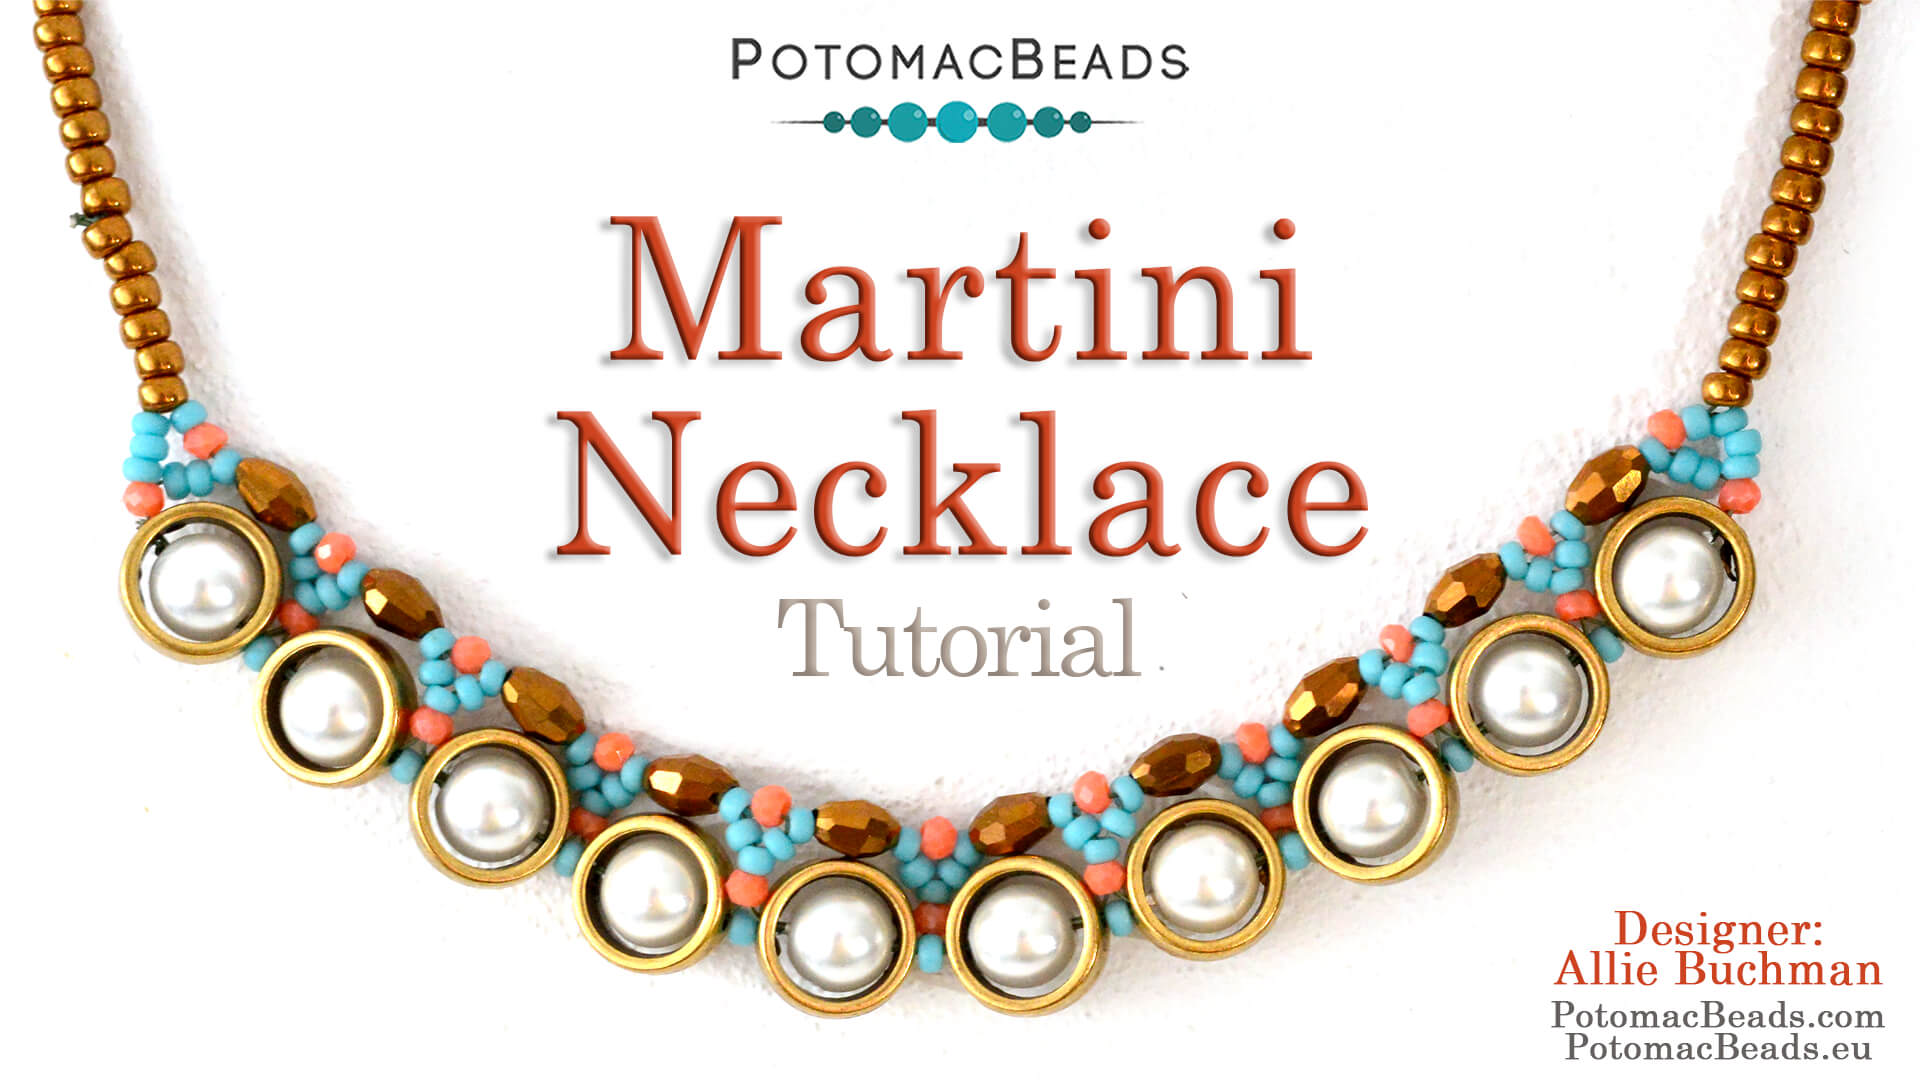 How to Bead Jewelry / Videos Sorted by Beads / Pearl Videos (Czech, Freshwater, Potomac Pearls) / Martini Necklace Tutorial